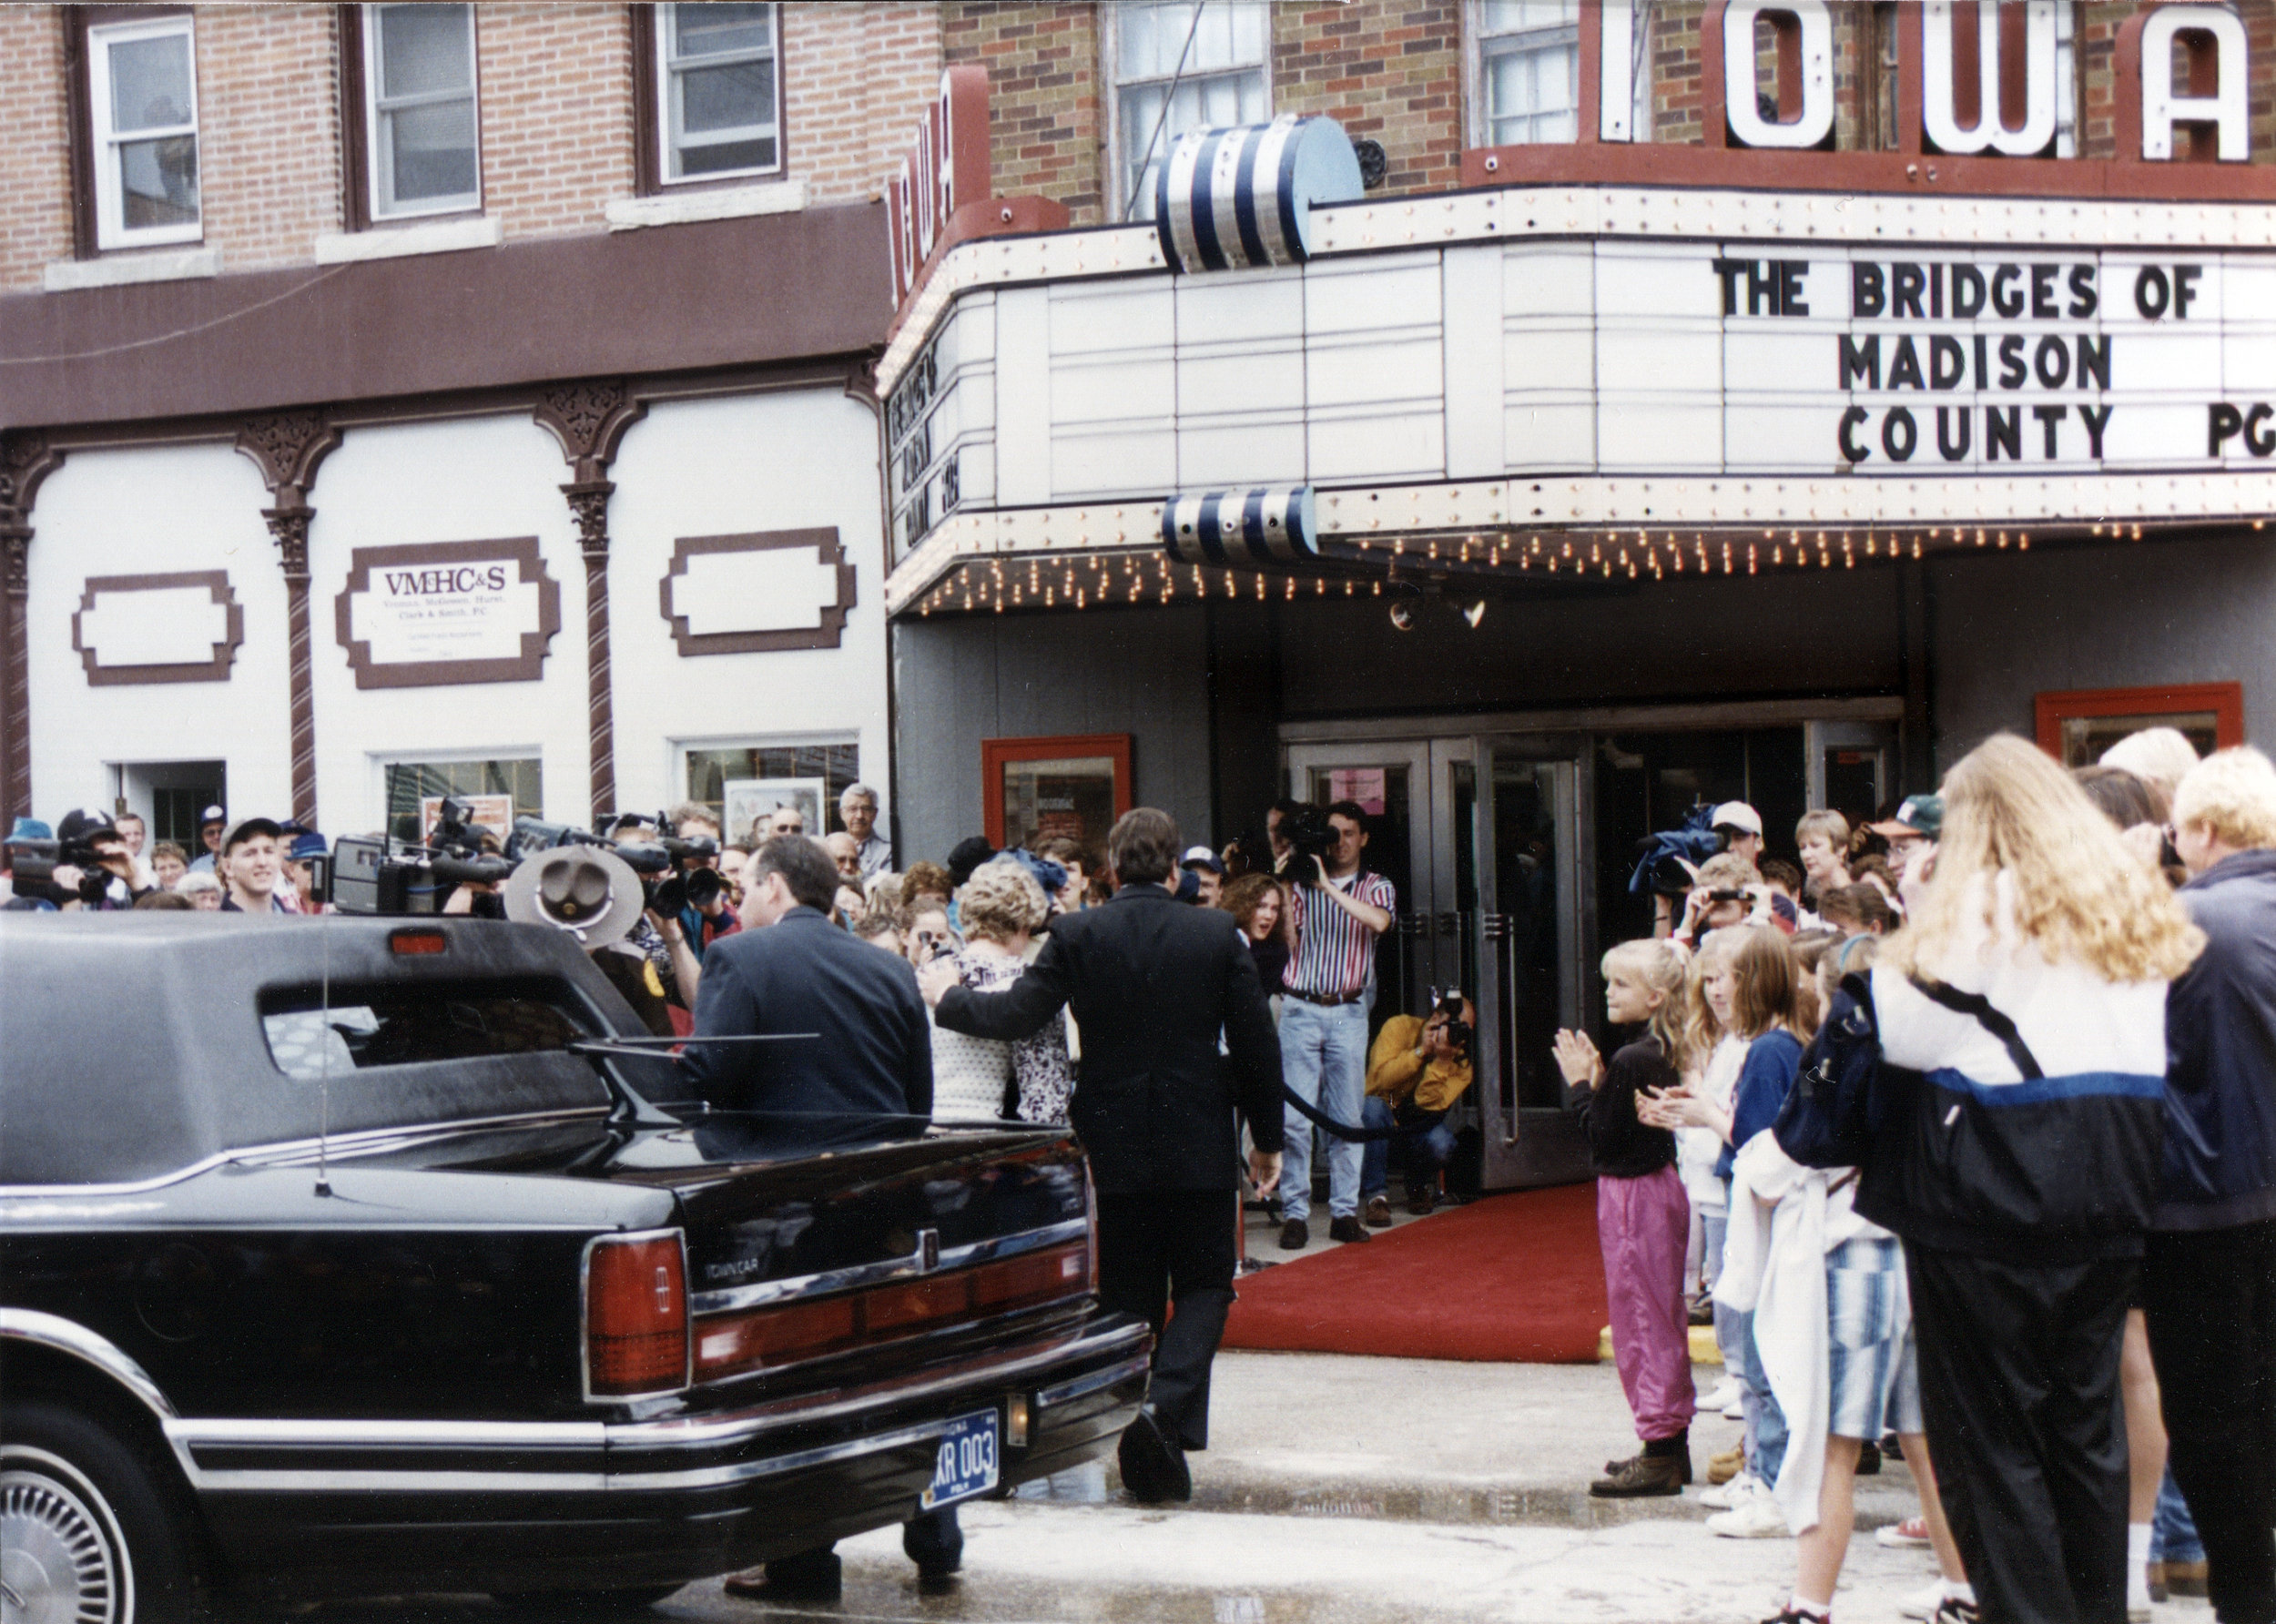 The Bridges of Madison County premiere at the Iowa Theater, 1995. Photo courtesy Wayne Davis.